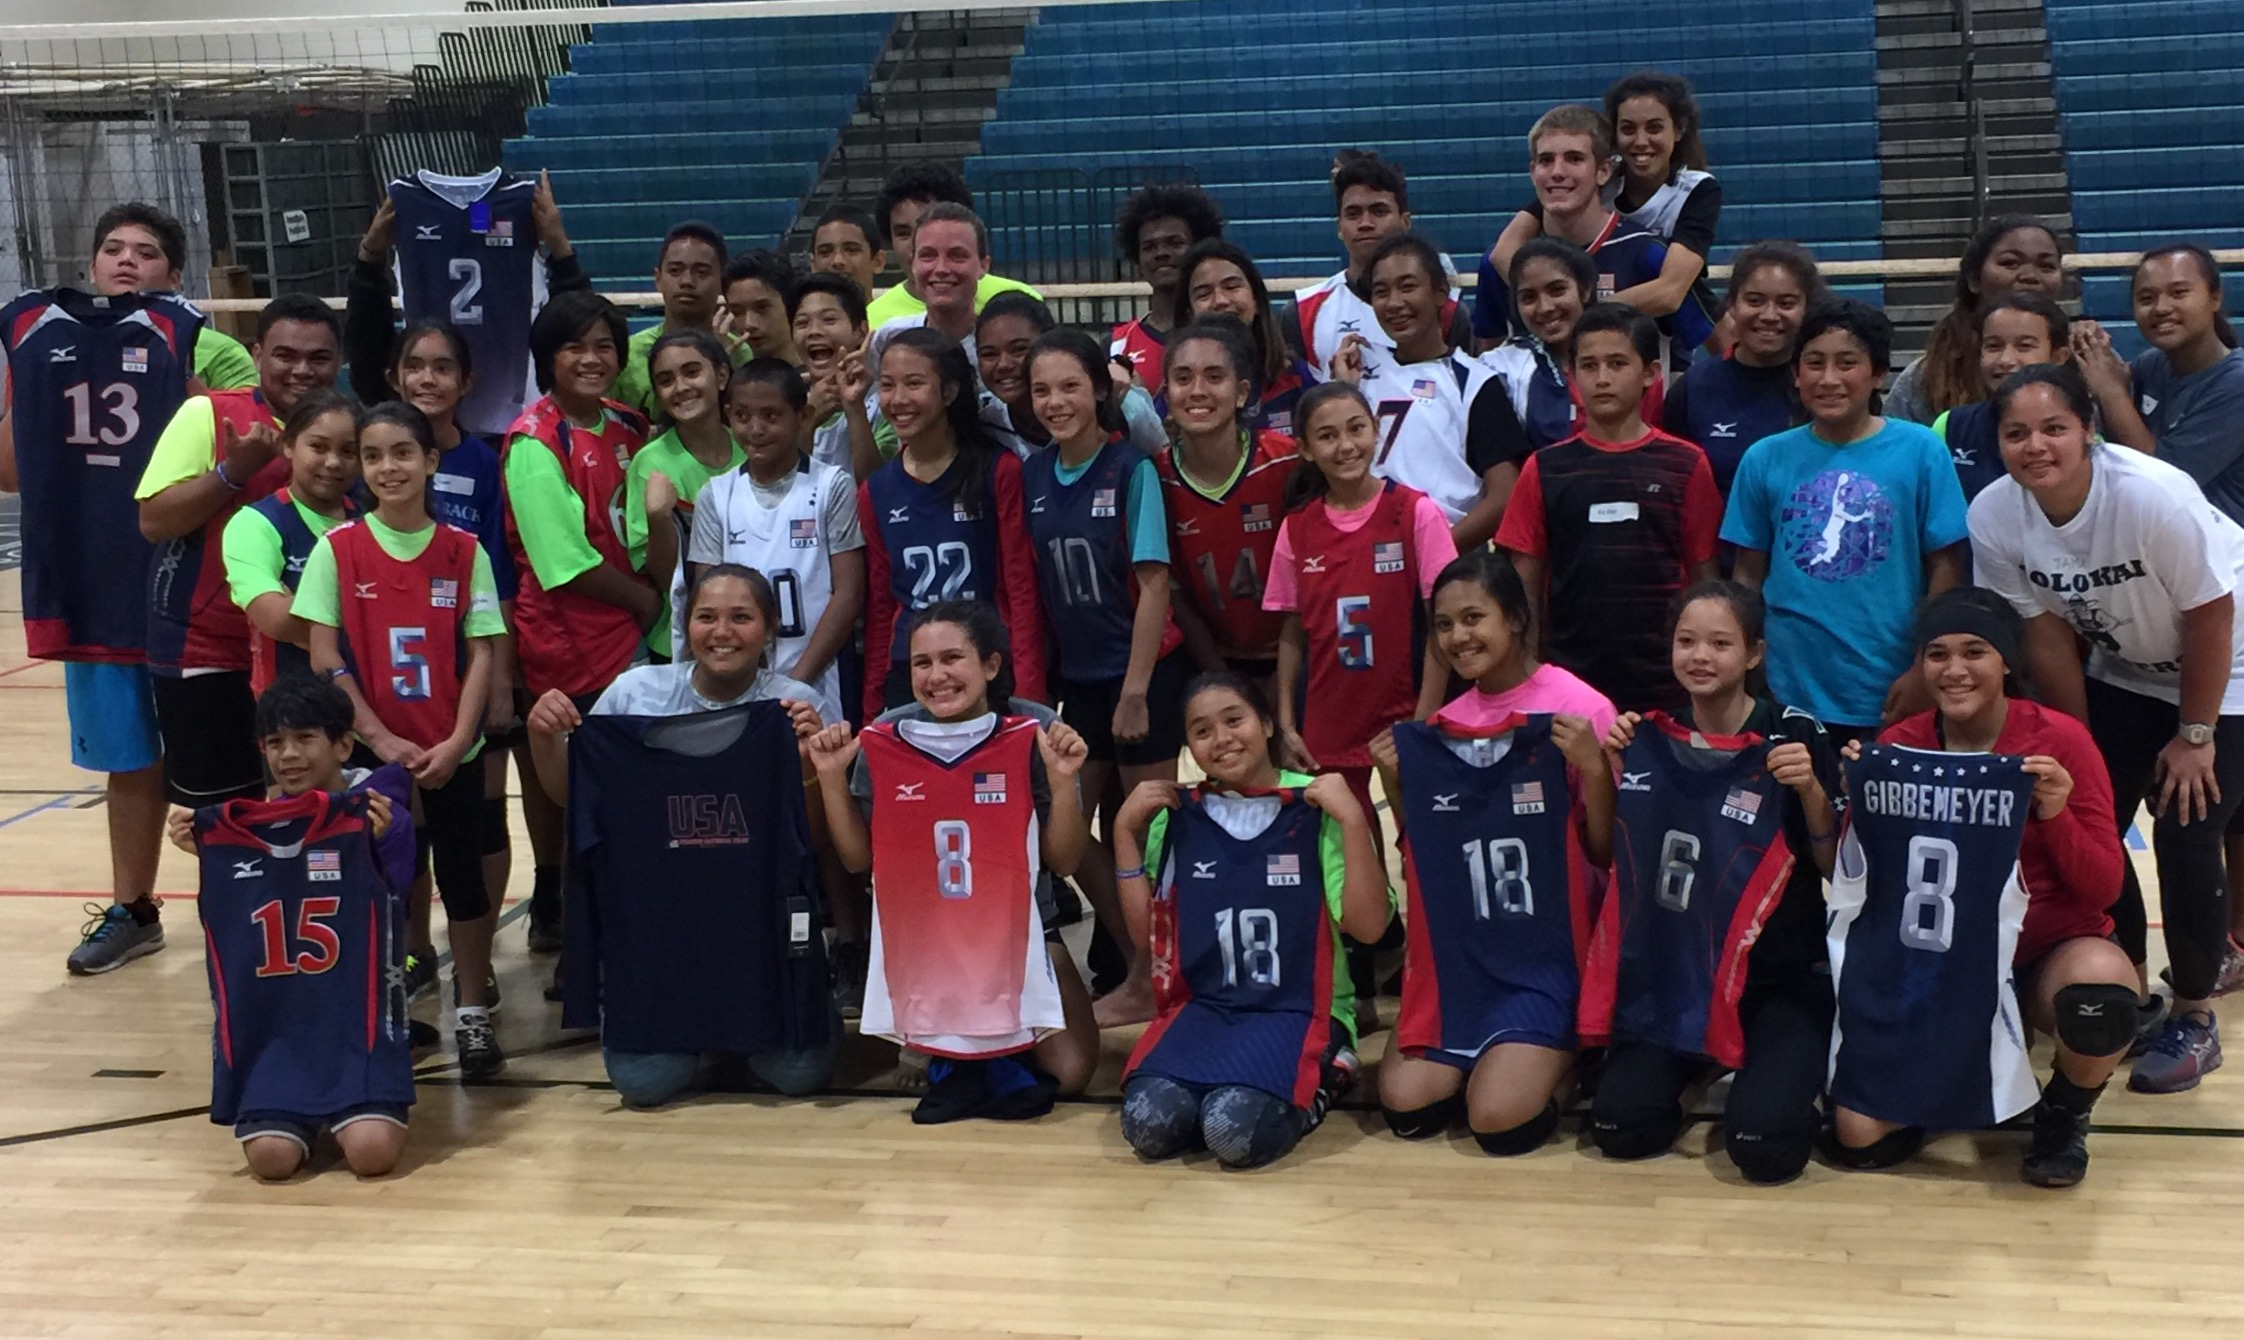 THANK YOU USA VOLLEYBALL!!! DREAM BIG KIDS!!!